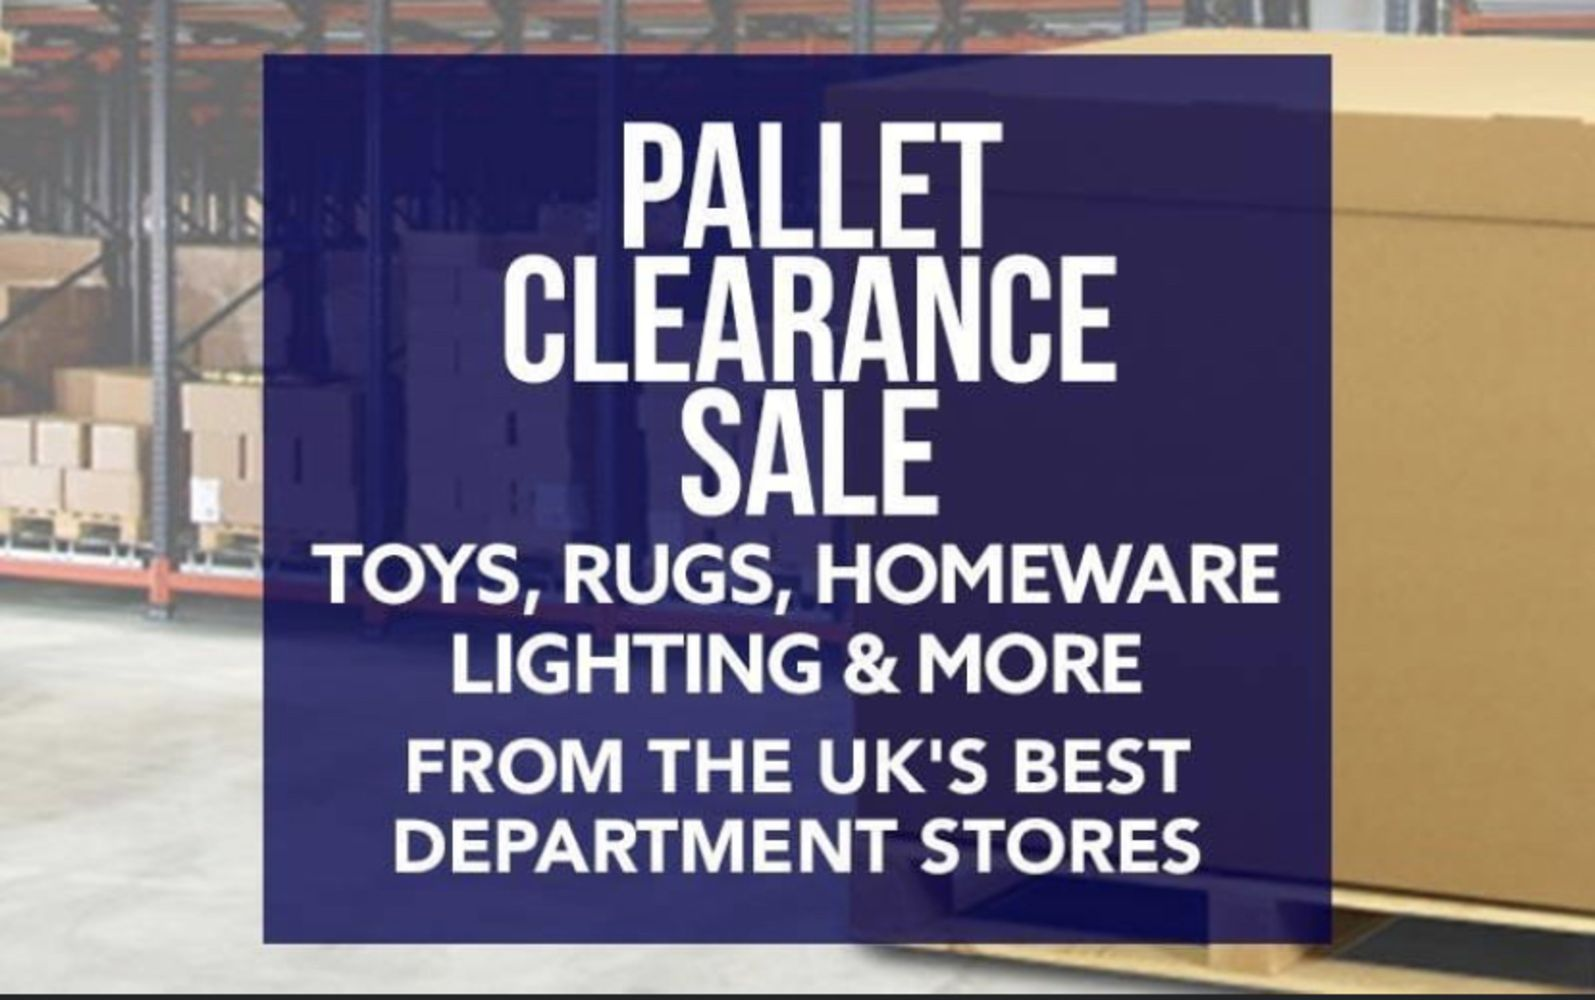 No Reserve - Pallet Clearance Sale! 22nd March 2021